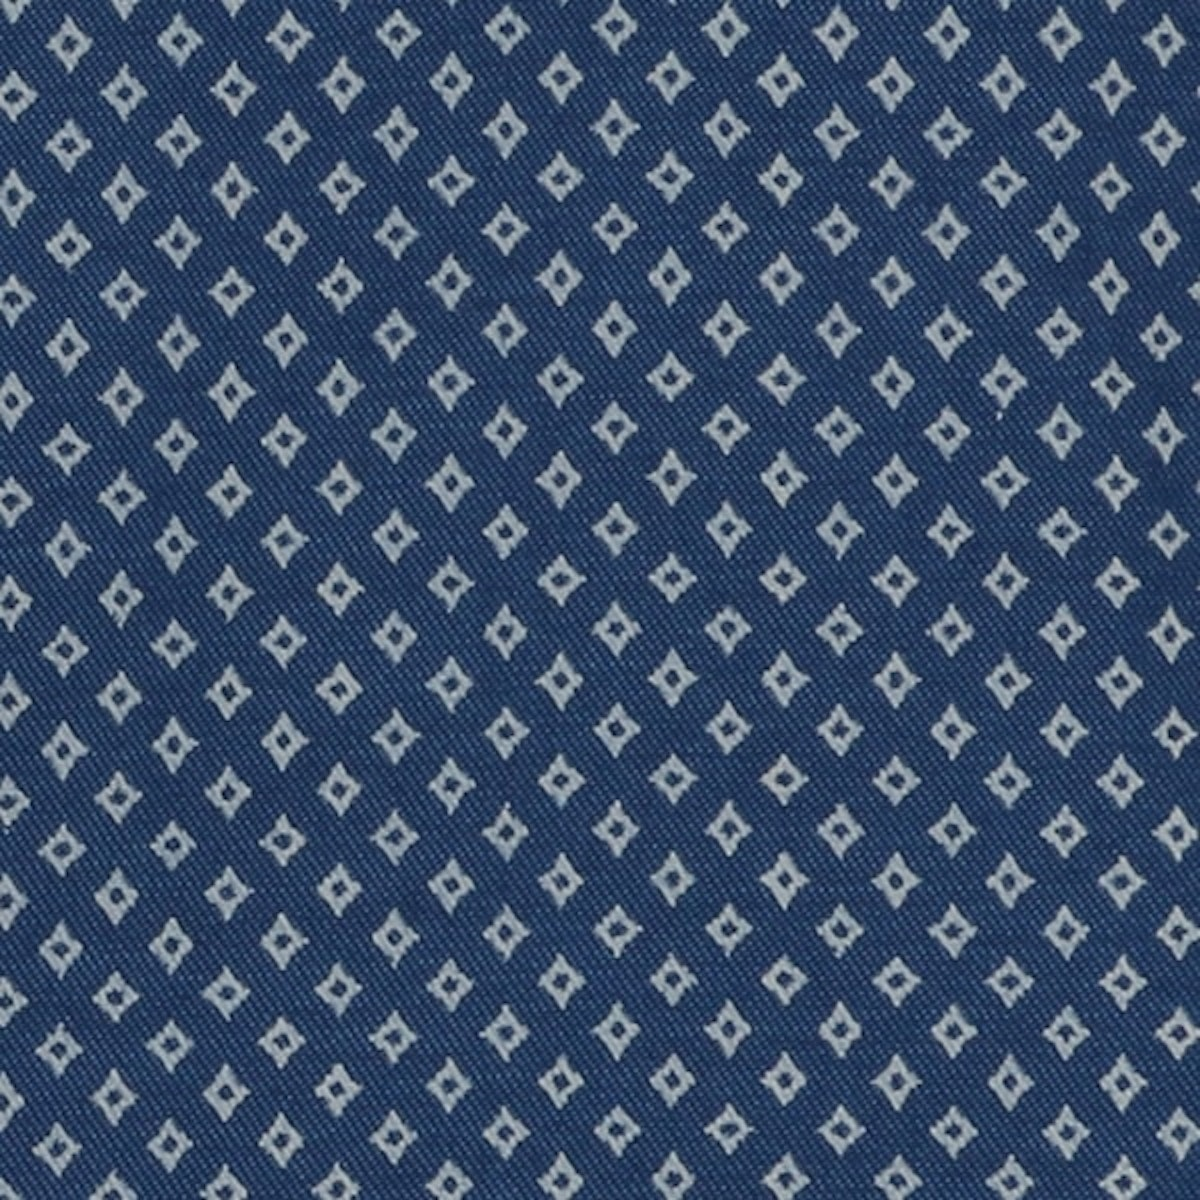 InStitchu Shirt Fabric 4439